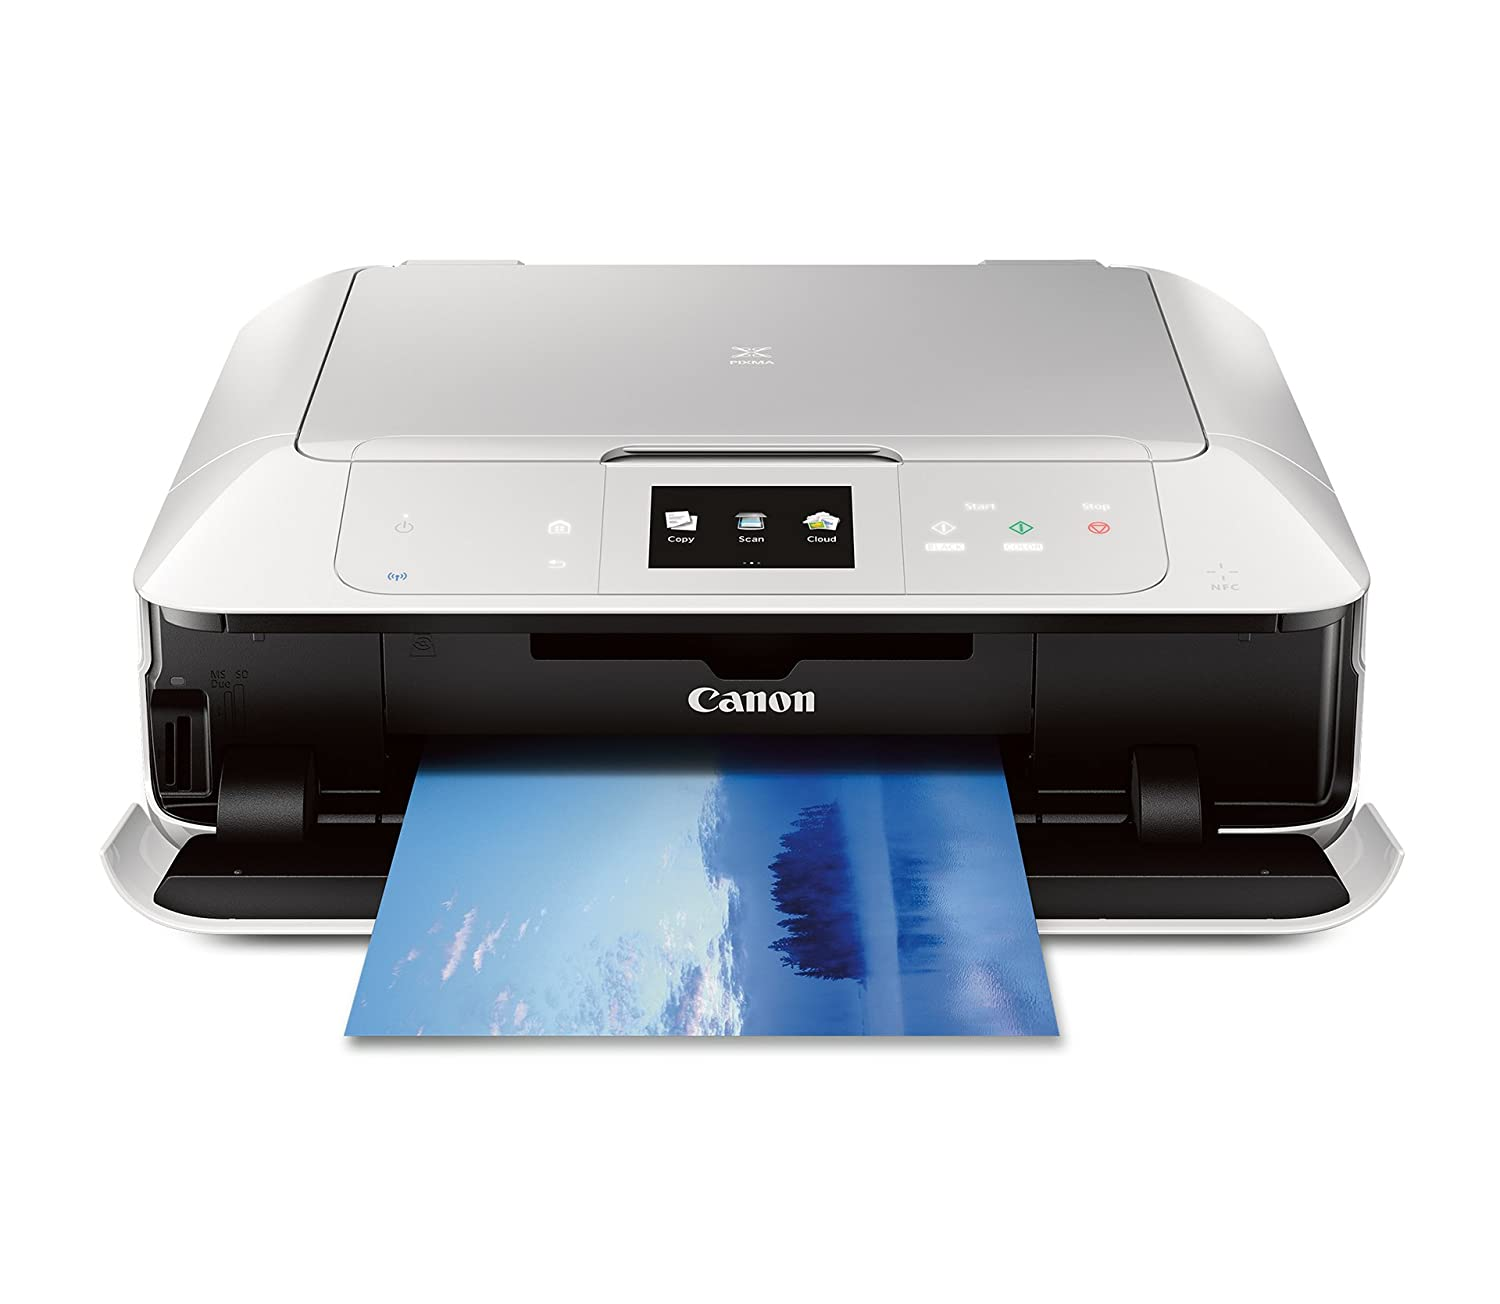 Color printer wireless - Amazon Com Canon Mg7520 Wireless Color Cloud Printer With Scanner And Copier White Discontinued By Manufacturer Electronics